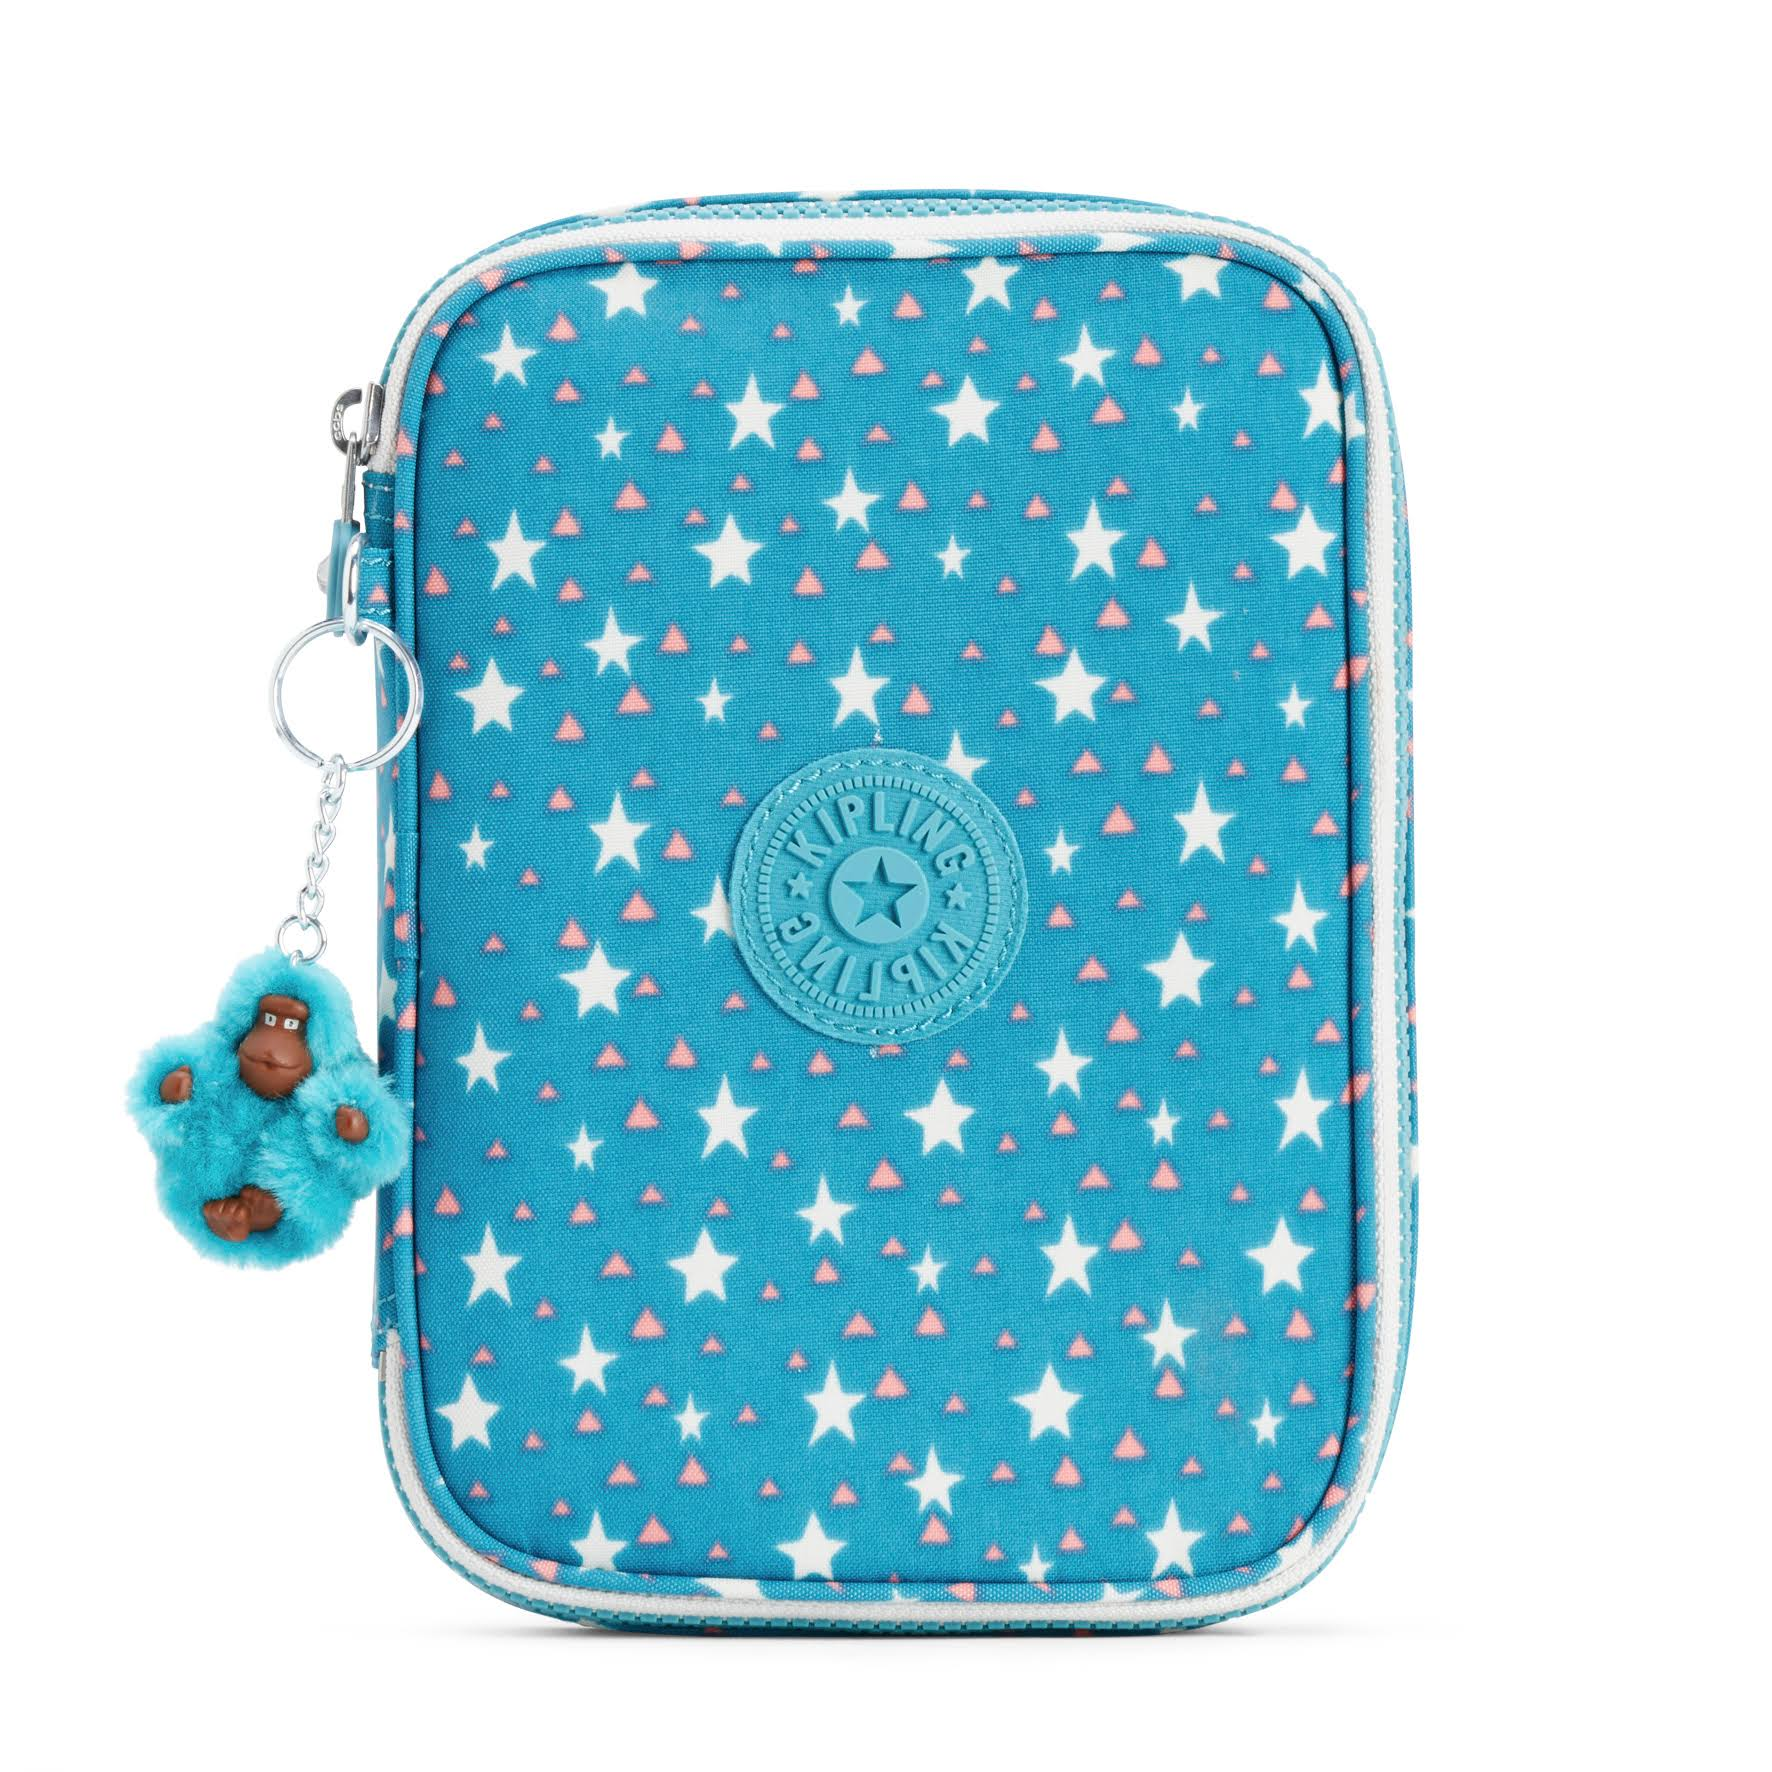 Cool Star Kipling Girl Penne 100 0OPXnk8w